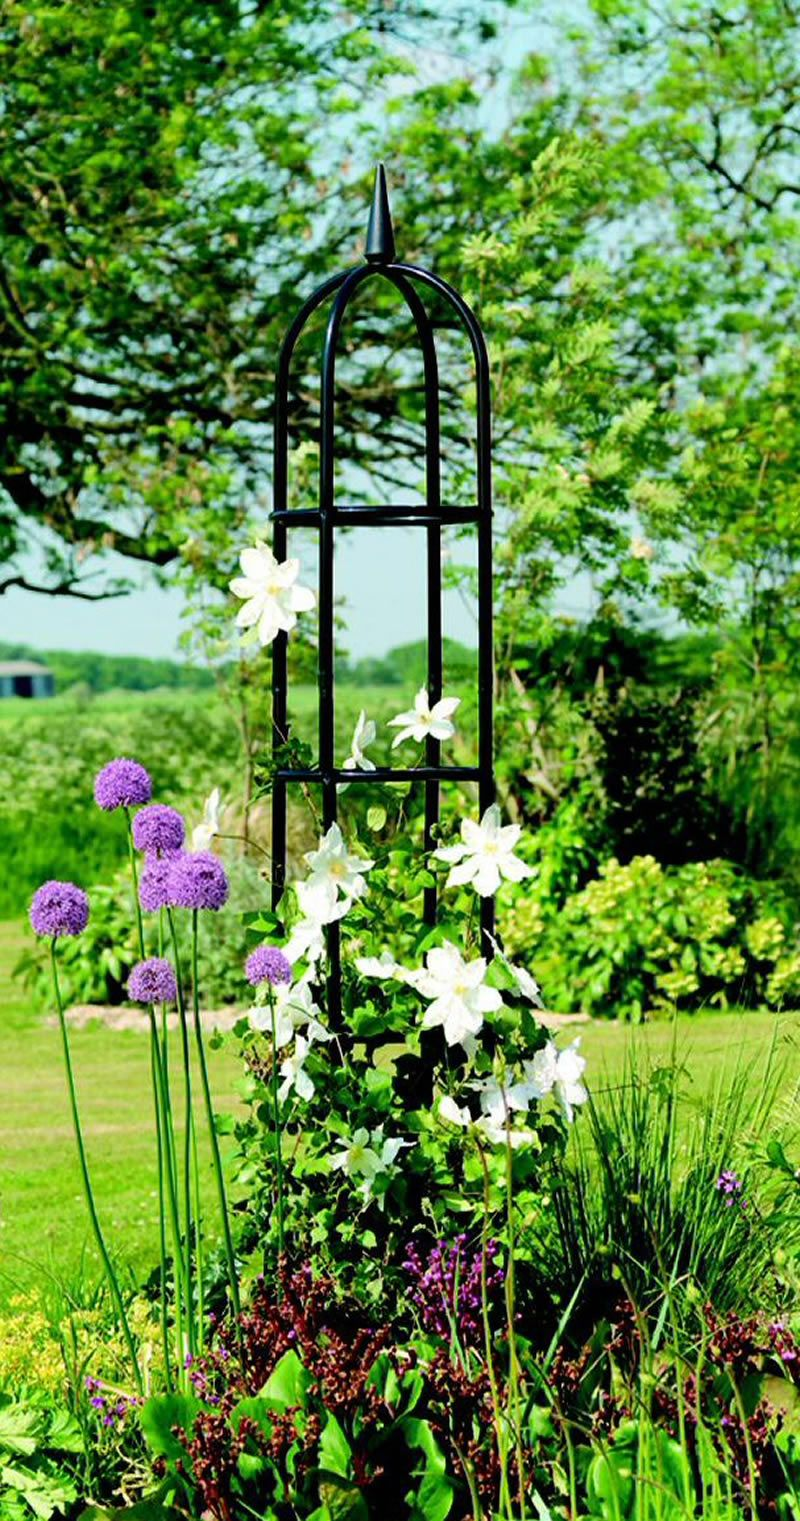 Classical Garden with trellis, white clematis and pretty